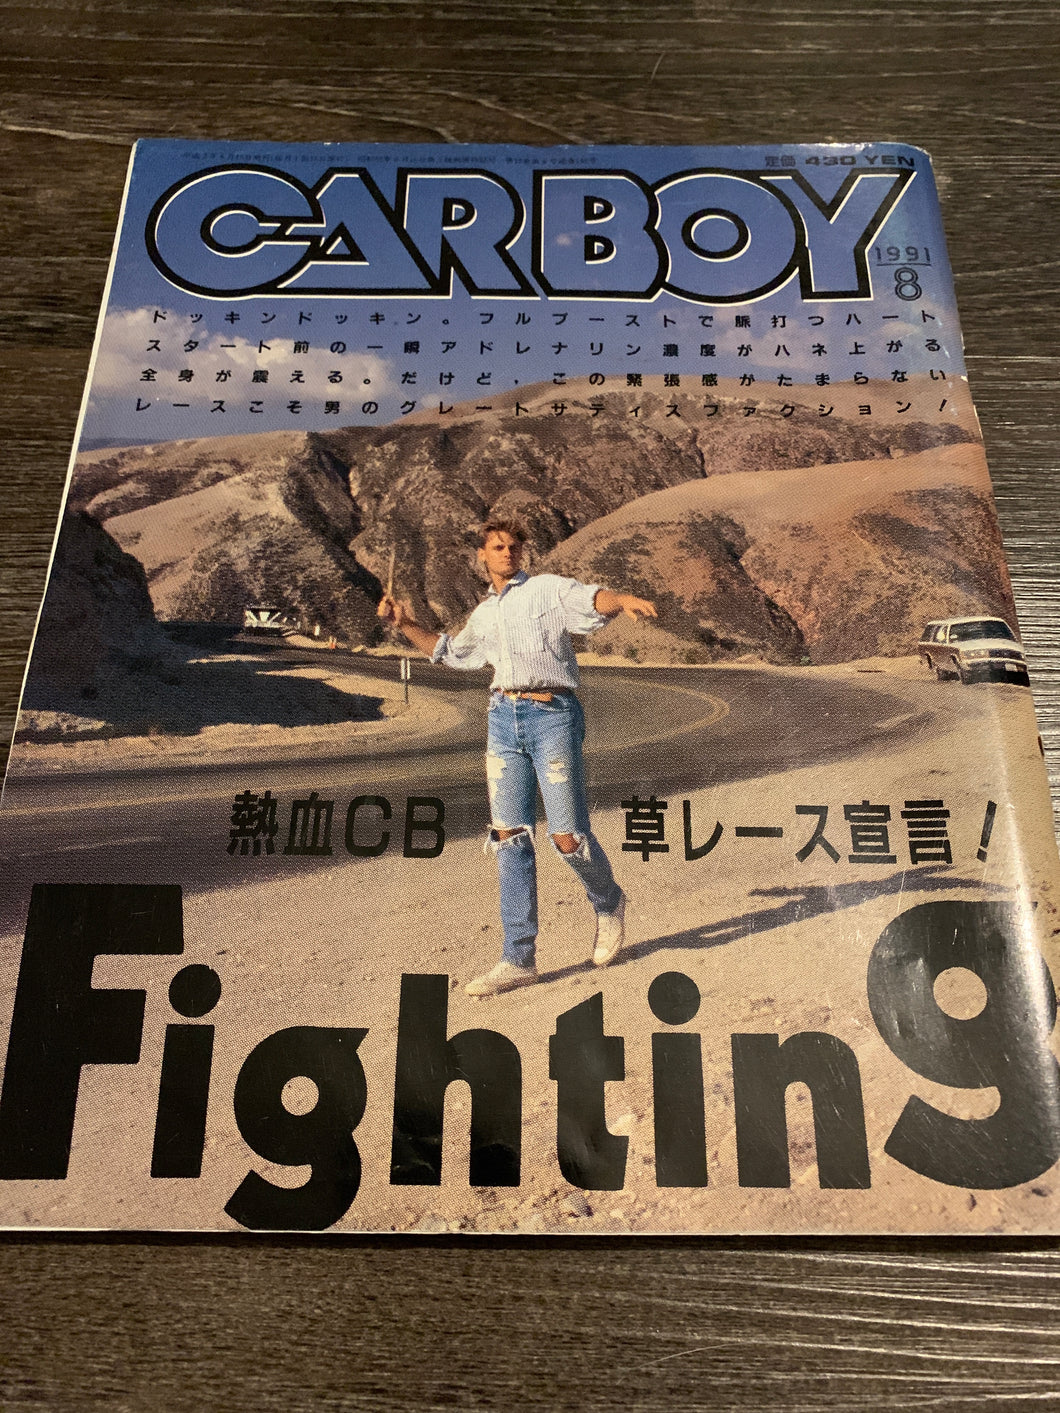 Carboy August 1991